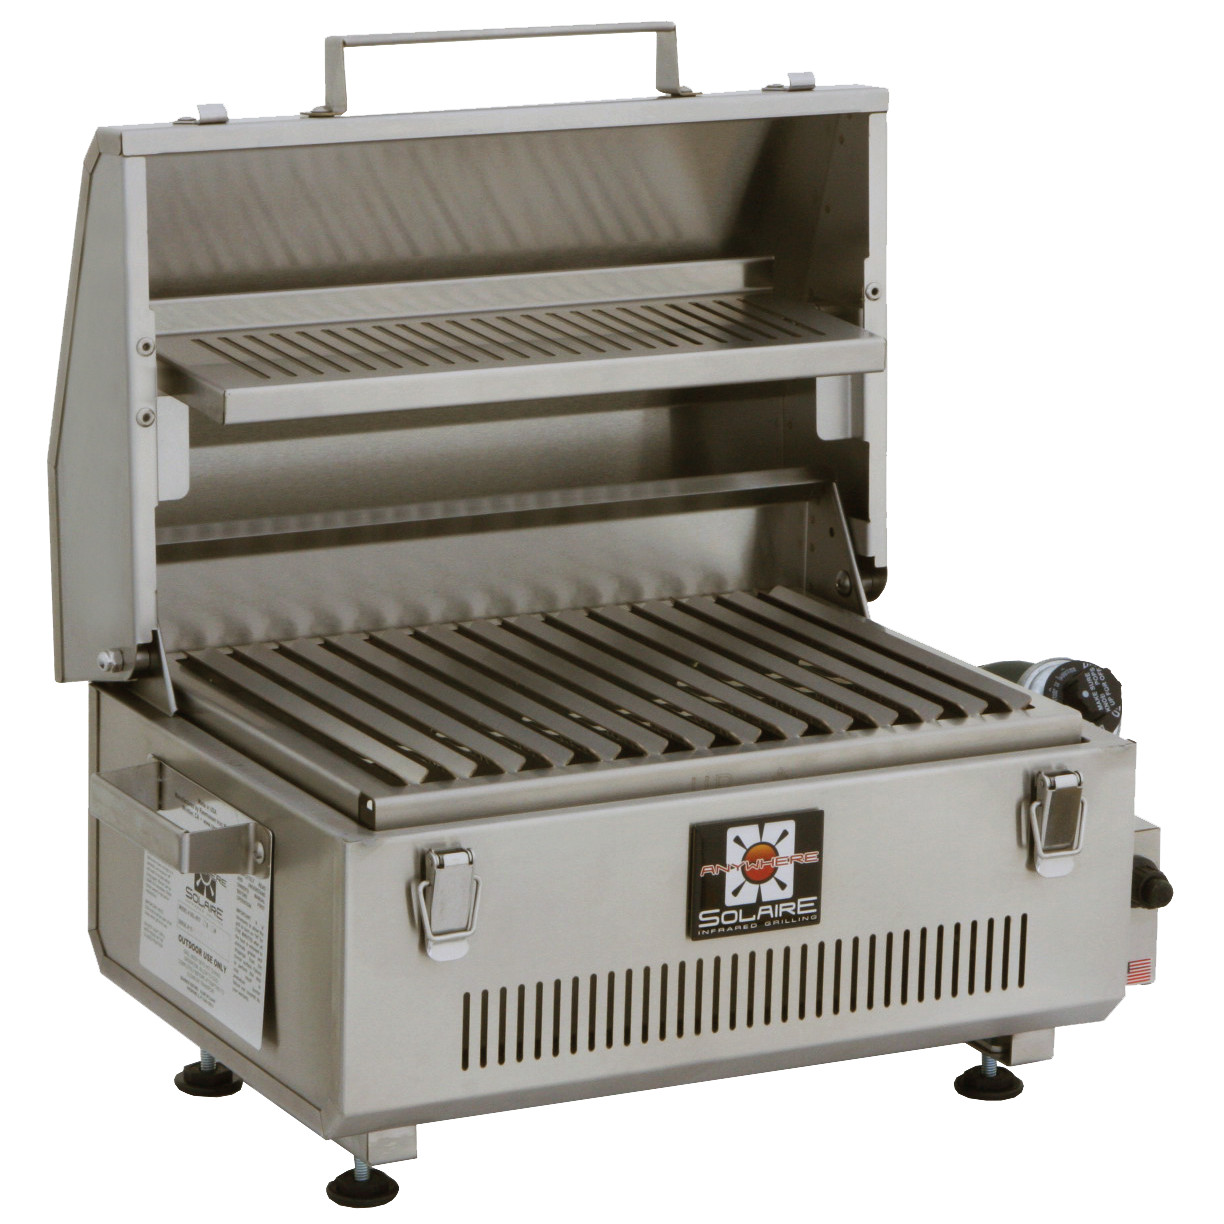 Portable Gas Grill And Griddle ~ Portable infrared grill solaire gas